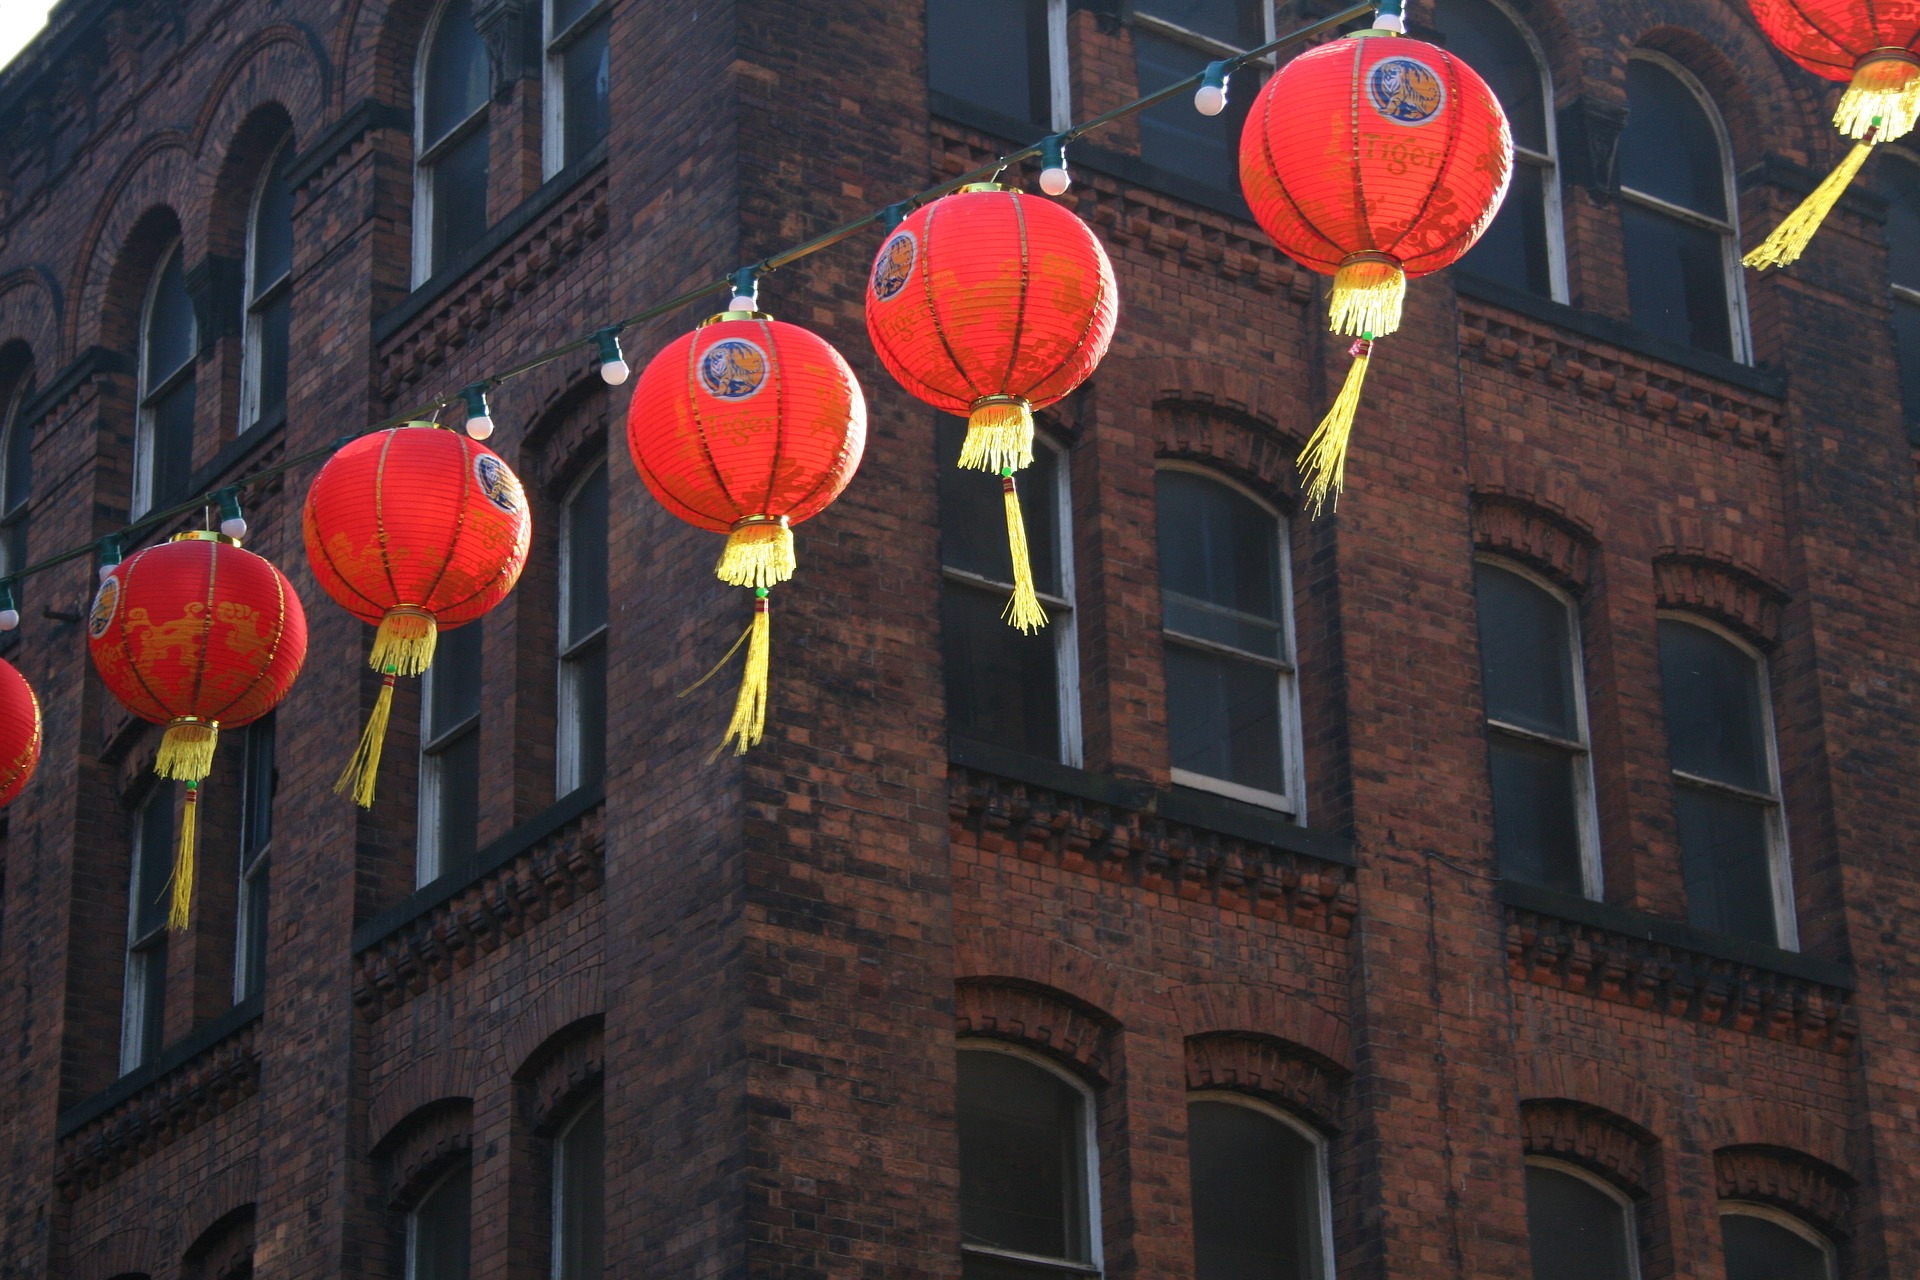 Things to know before moving to Chinatown